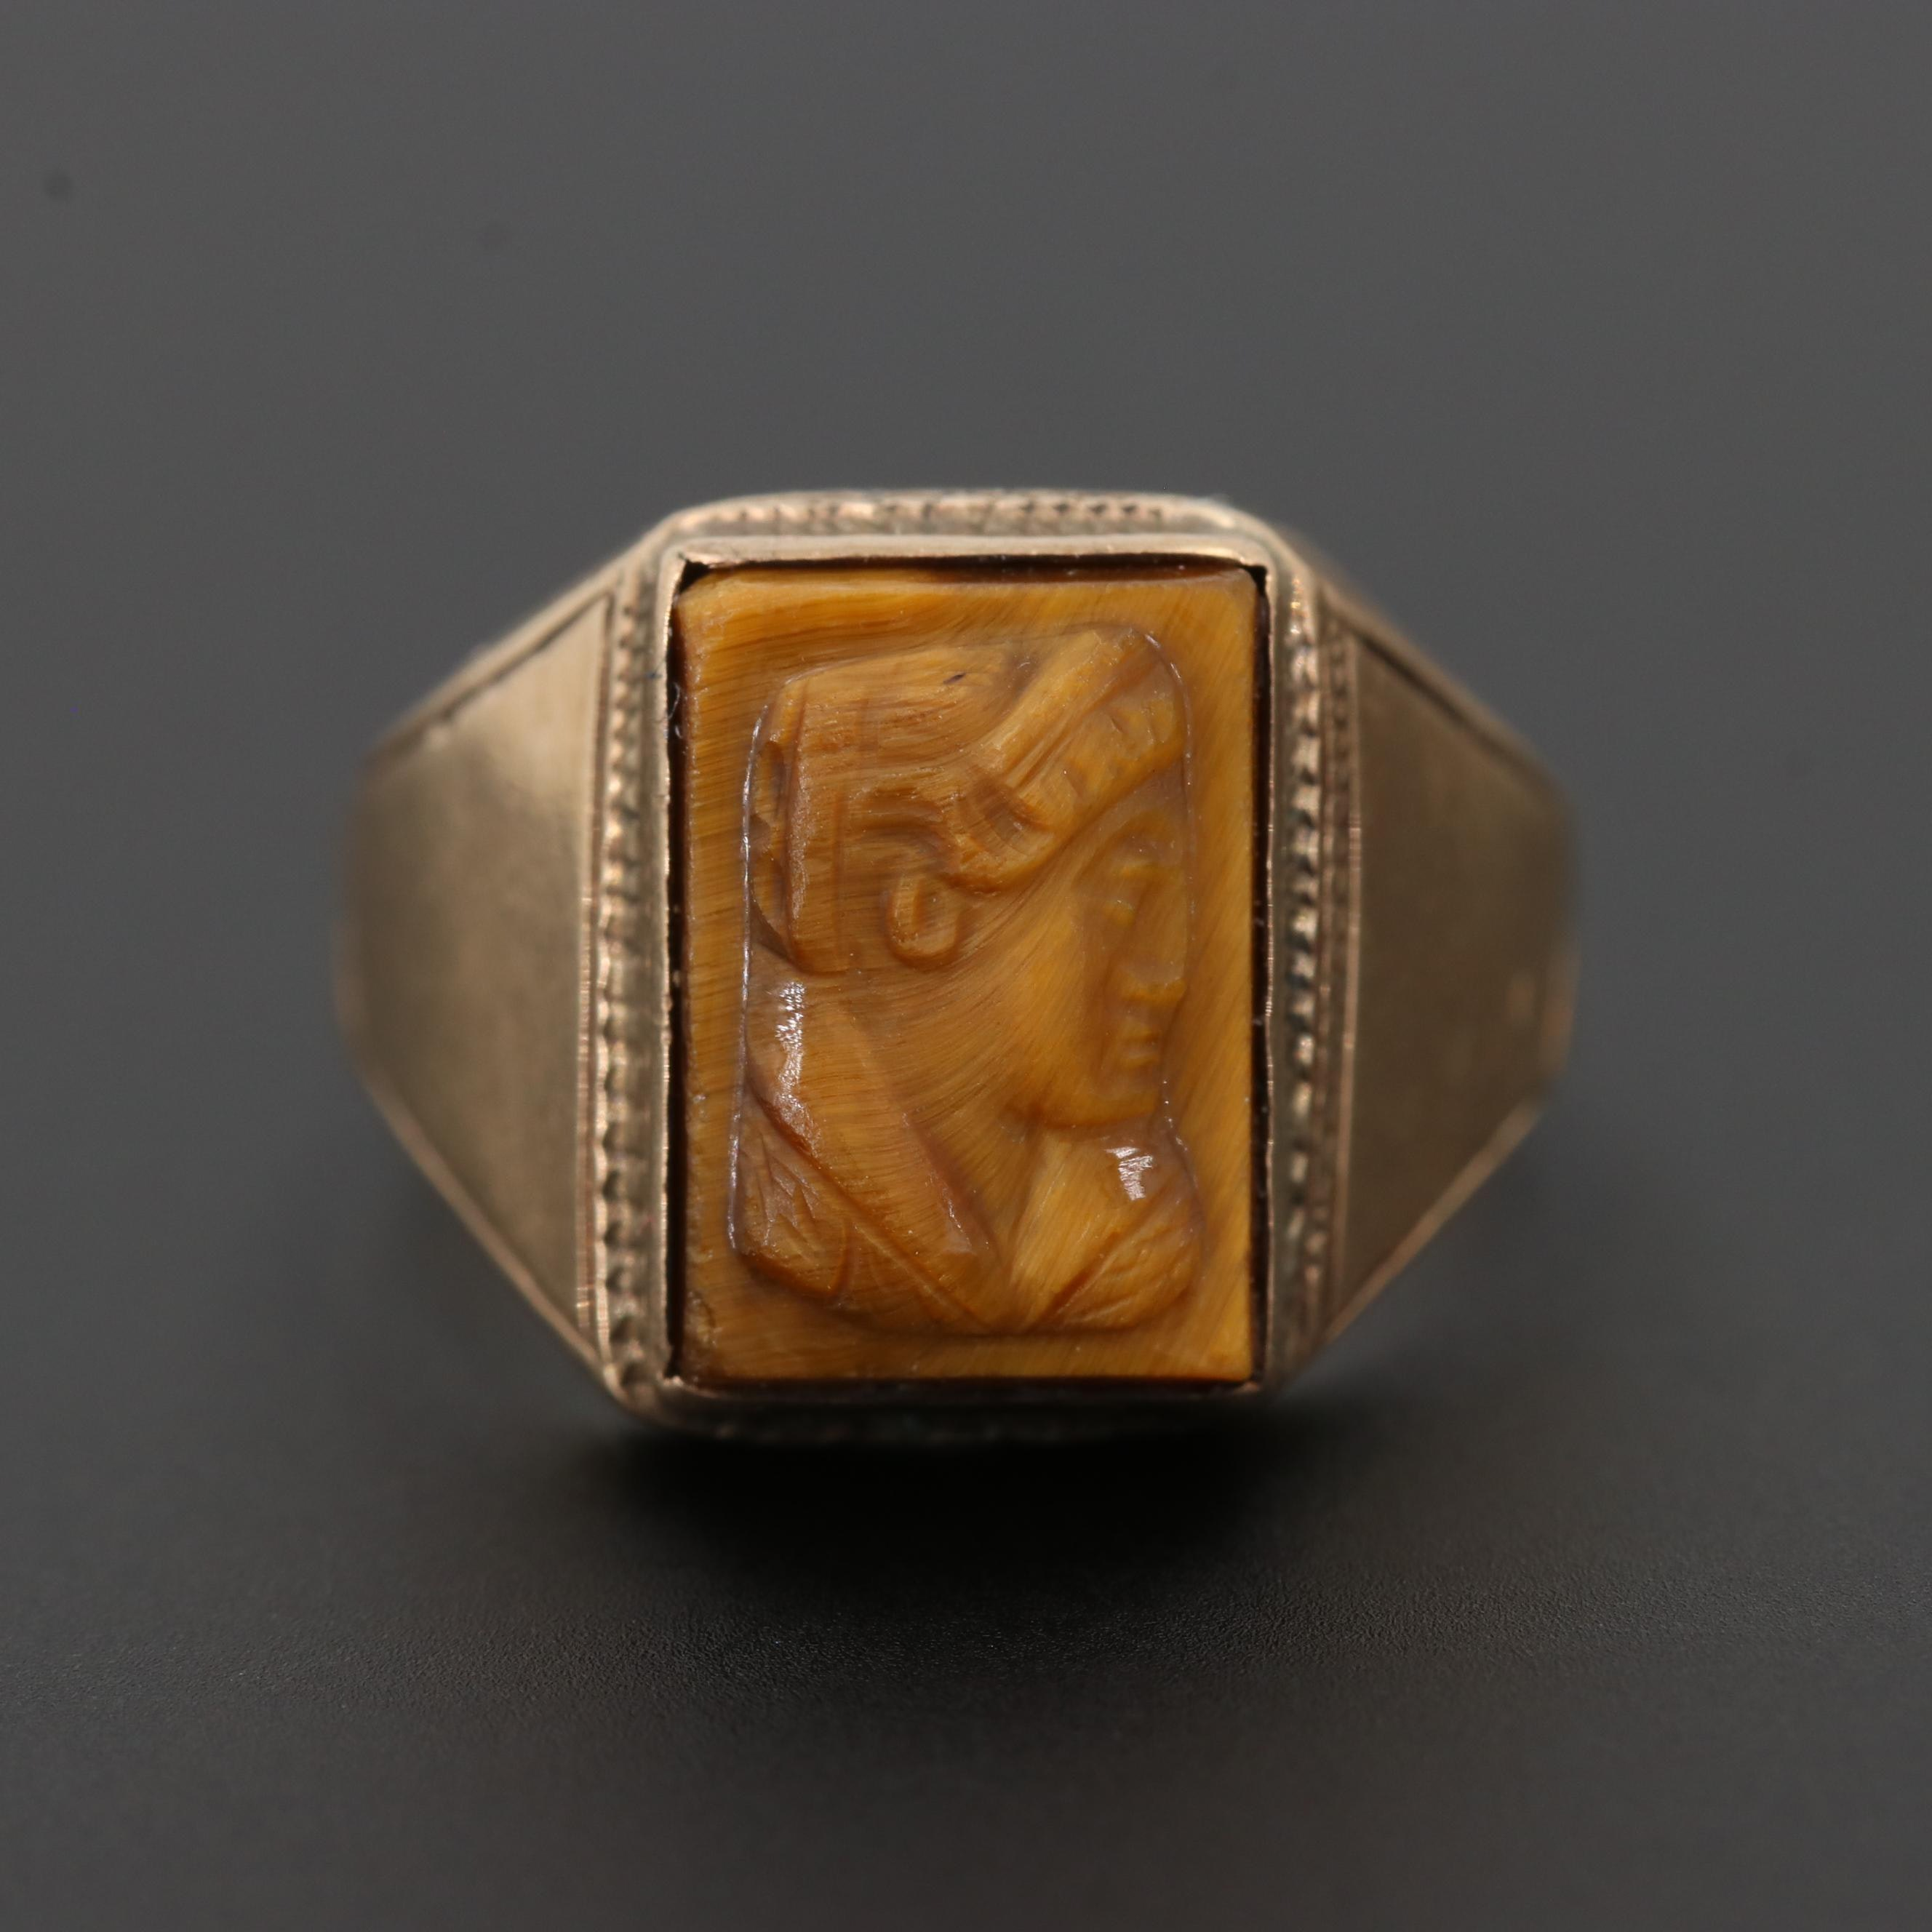 Vintage 10K Yellow Gold Tiger's Eye Carved Cameo Ring